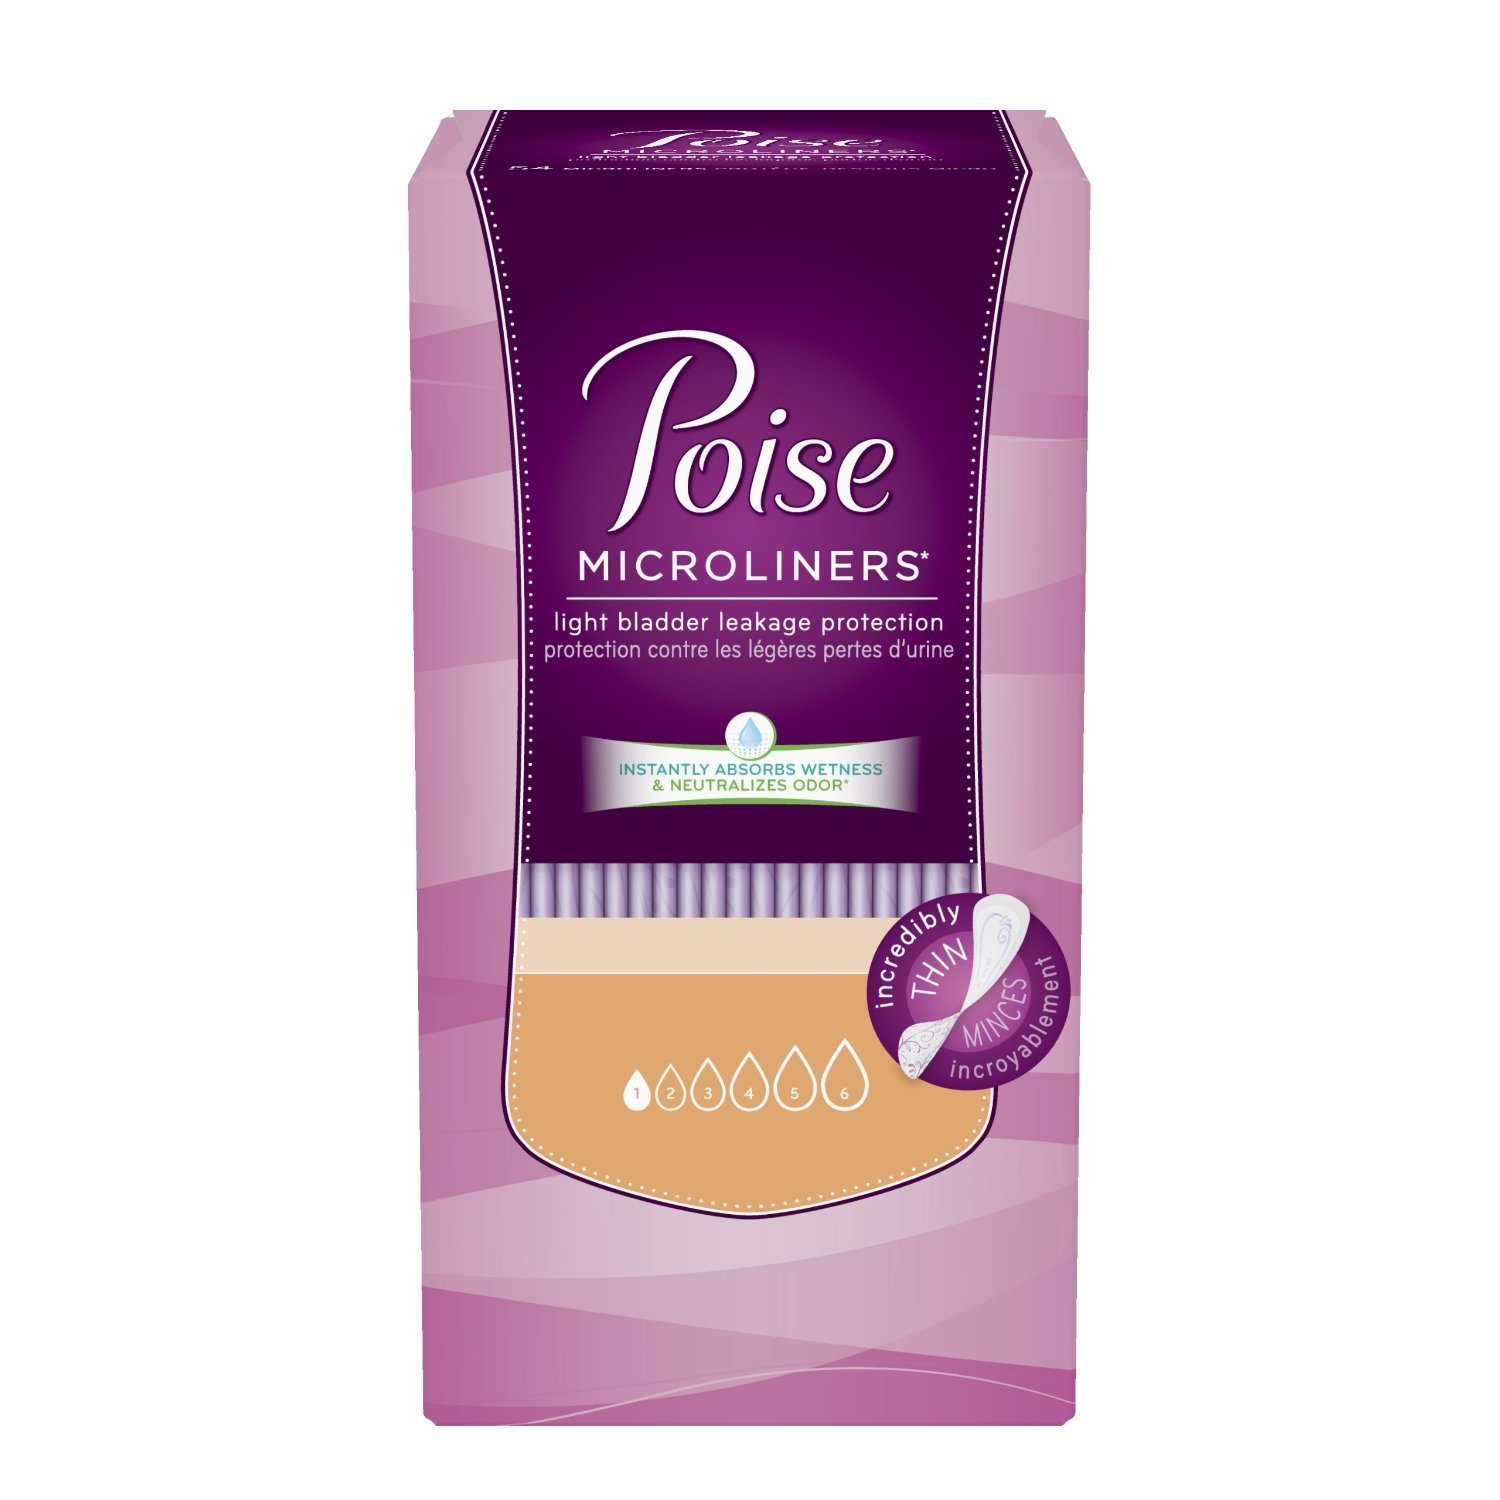 Poise Microliners, Long Length - Lightest Absorbency, 50 Count (Pack of 2) by Poise